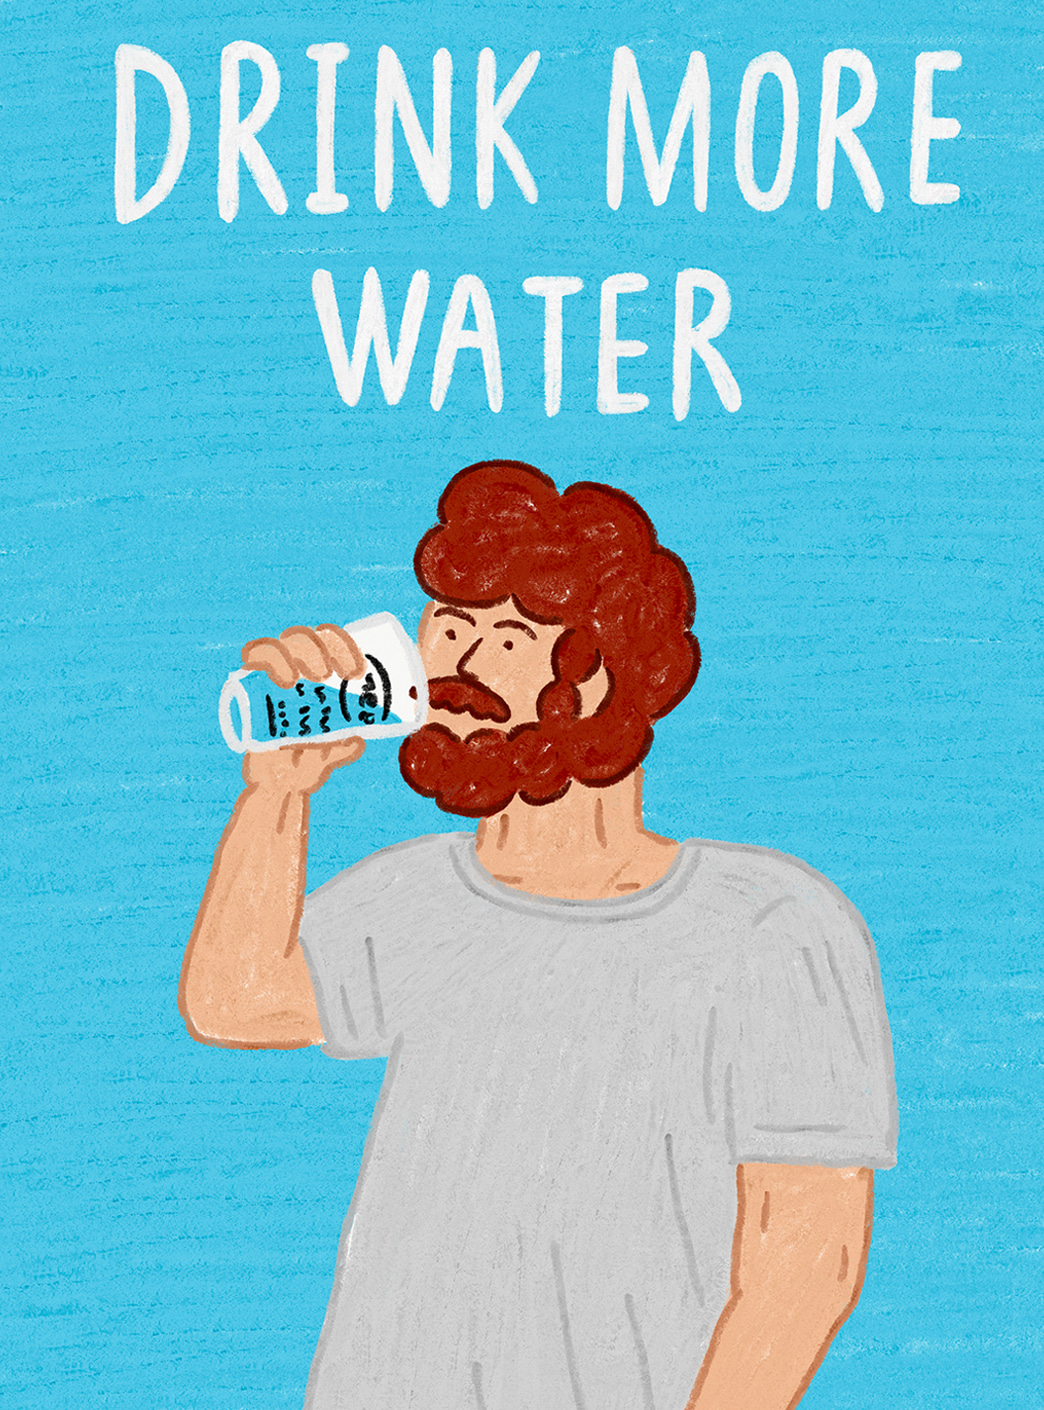 drink more water 엽서